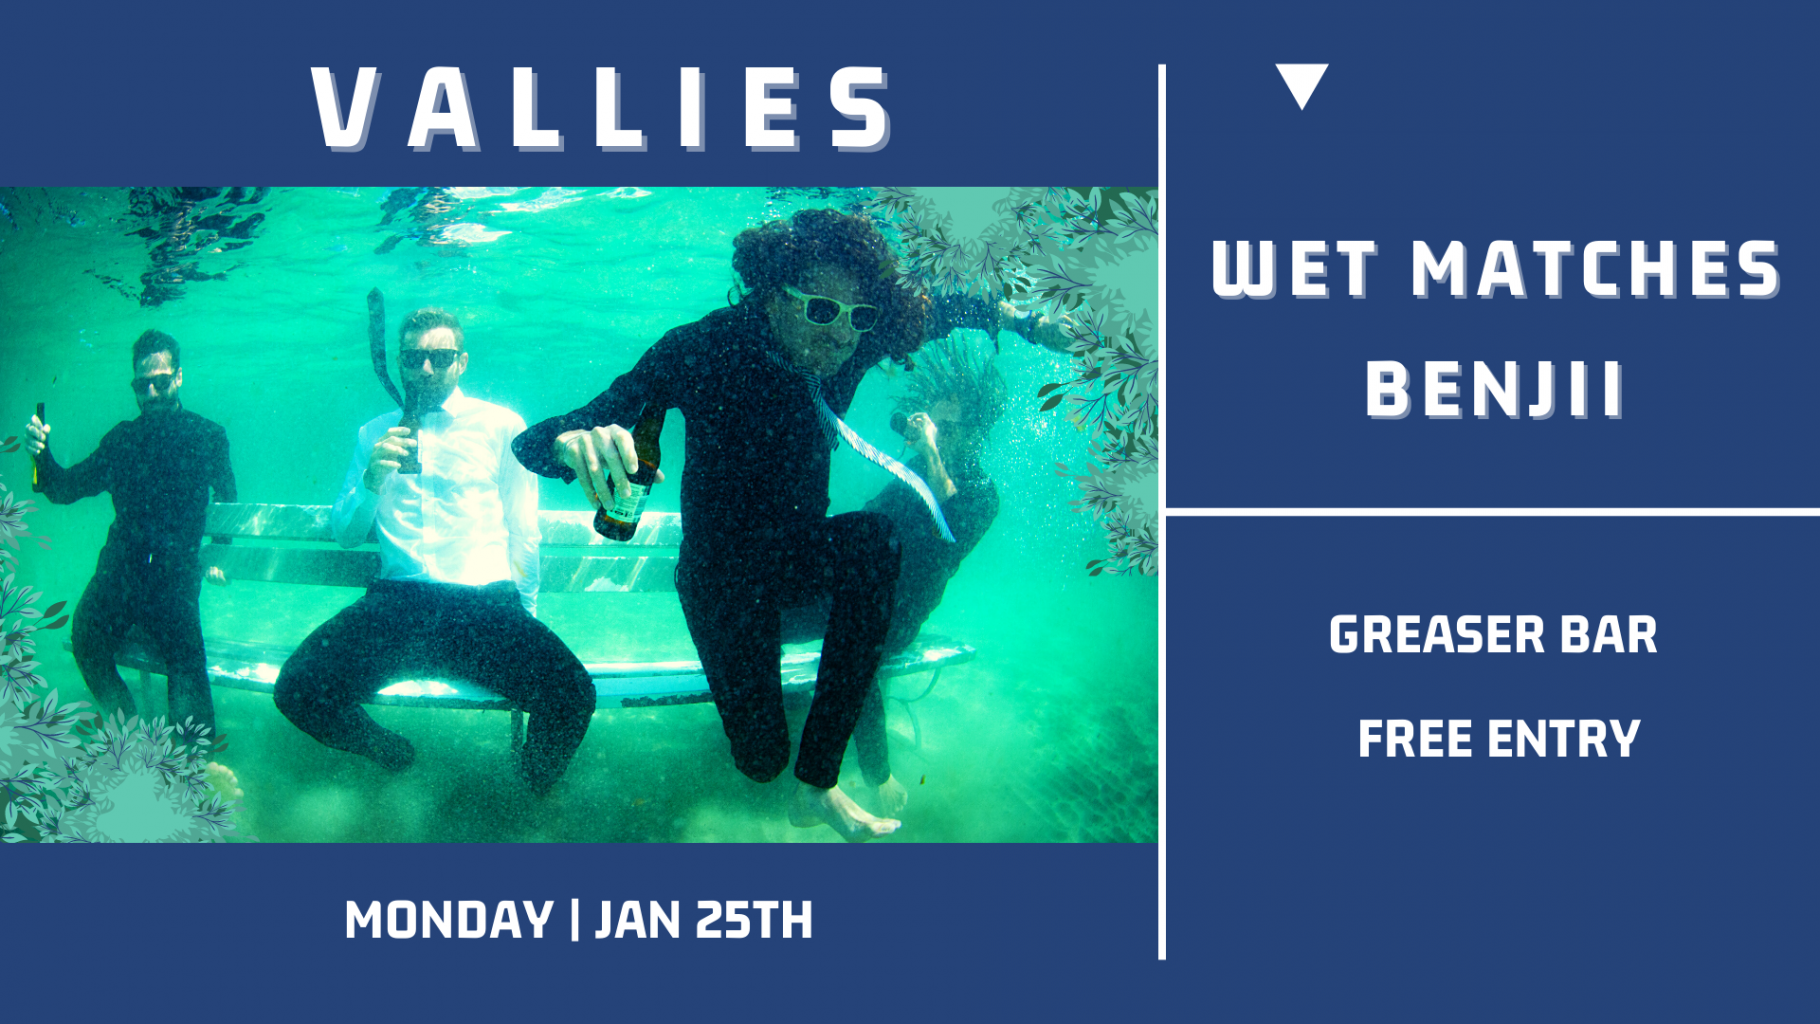 The Vallies,  Wet Matches & Benjii   FREE ENTRY   MON 25TH JANUARY